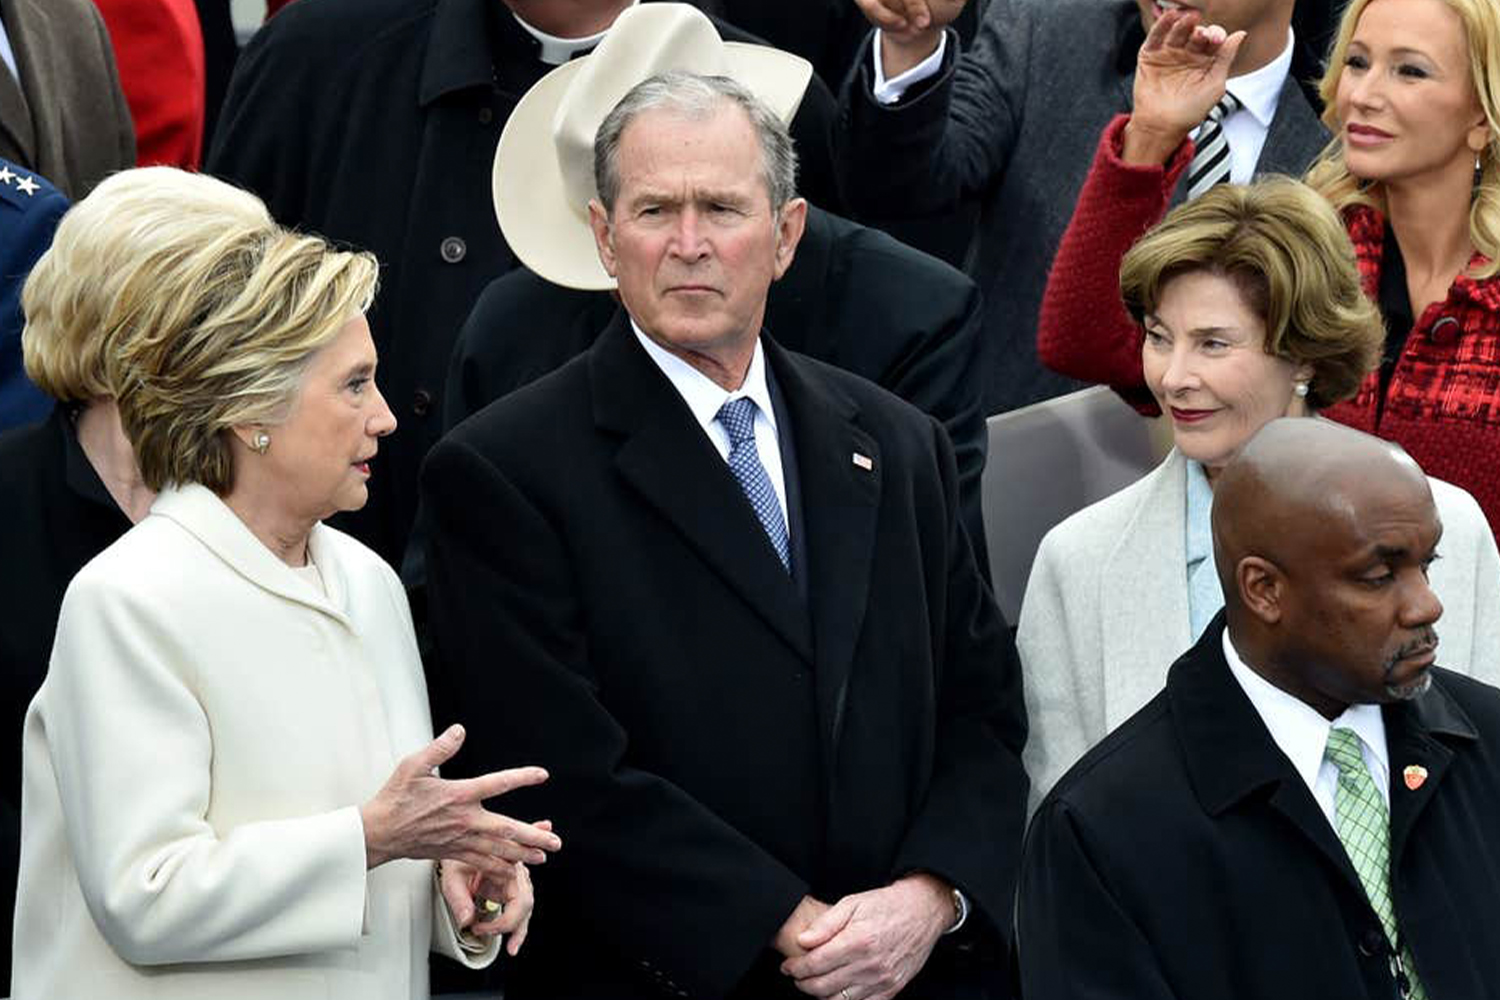 Hillary Clinton, George W. Bush and Laura Bush at the 2017 Presidential Inauguration.